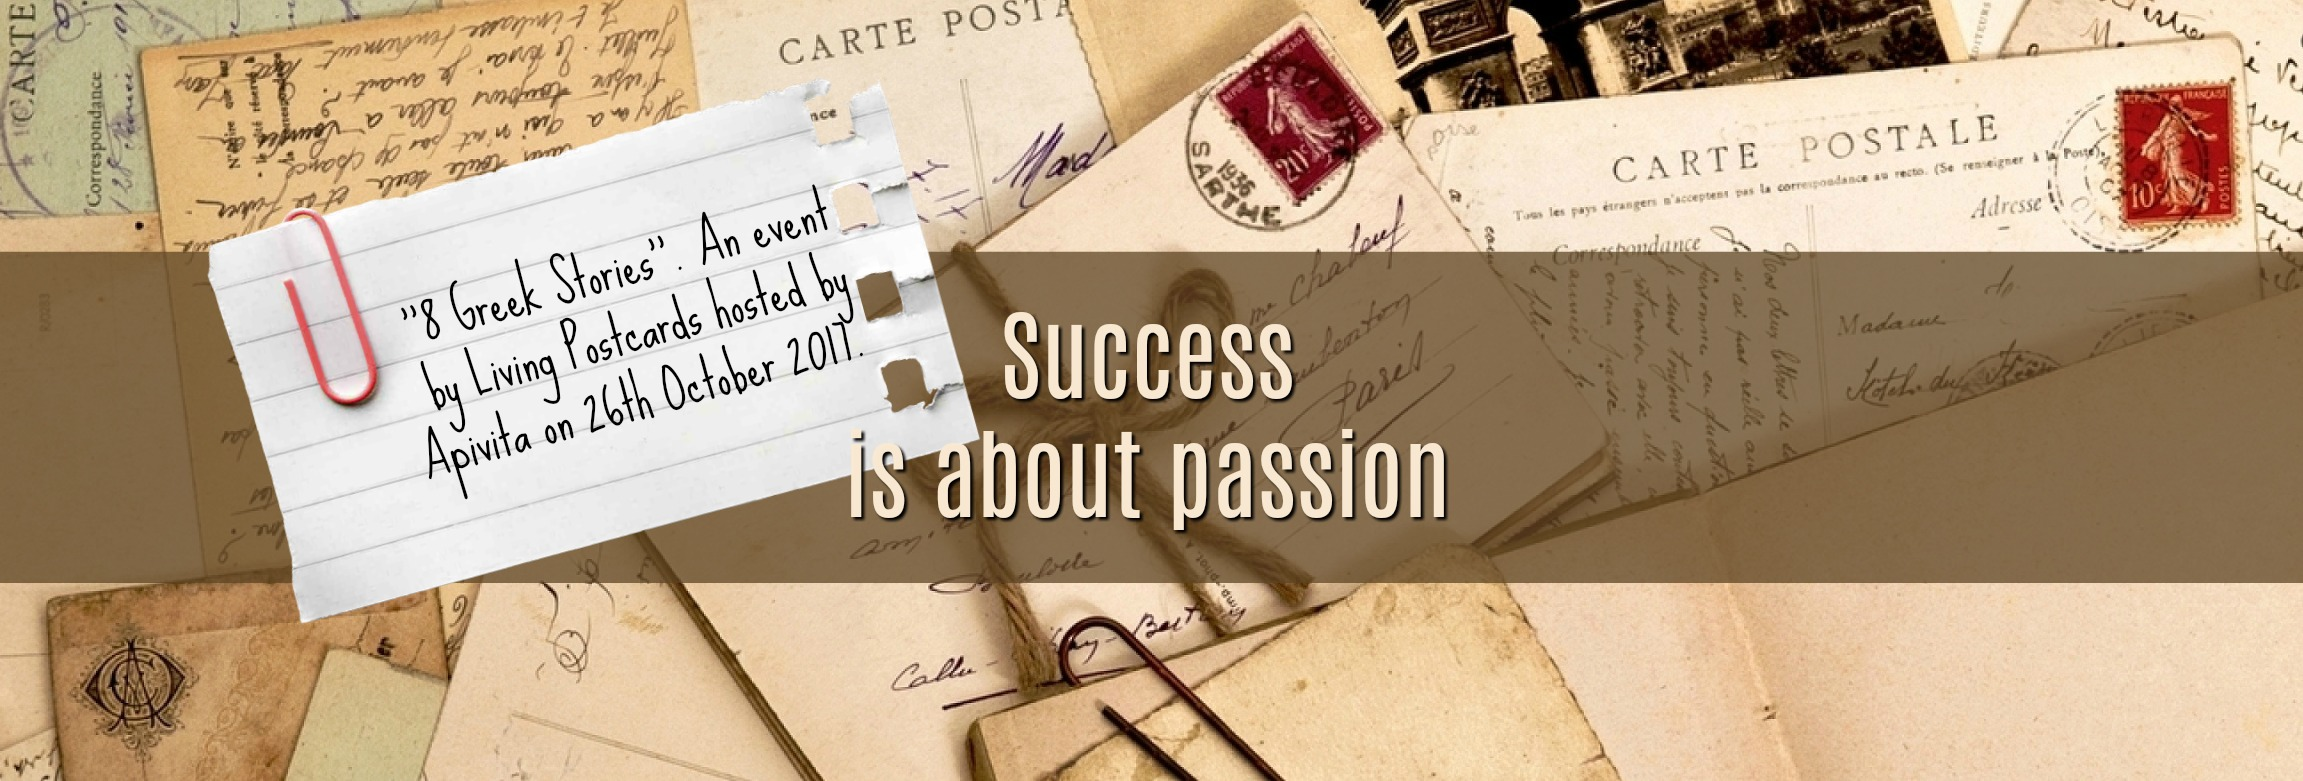 Success is about passion. 8 Greek Stories. An event by Living Postcards hosted by Apivita on 26th October 2017.